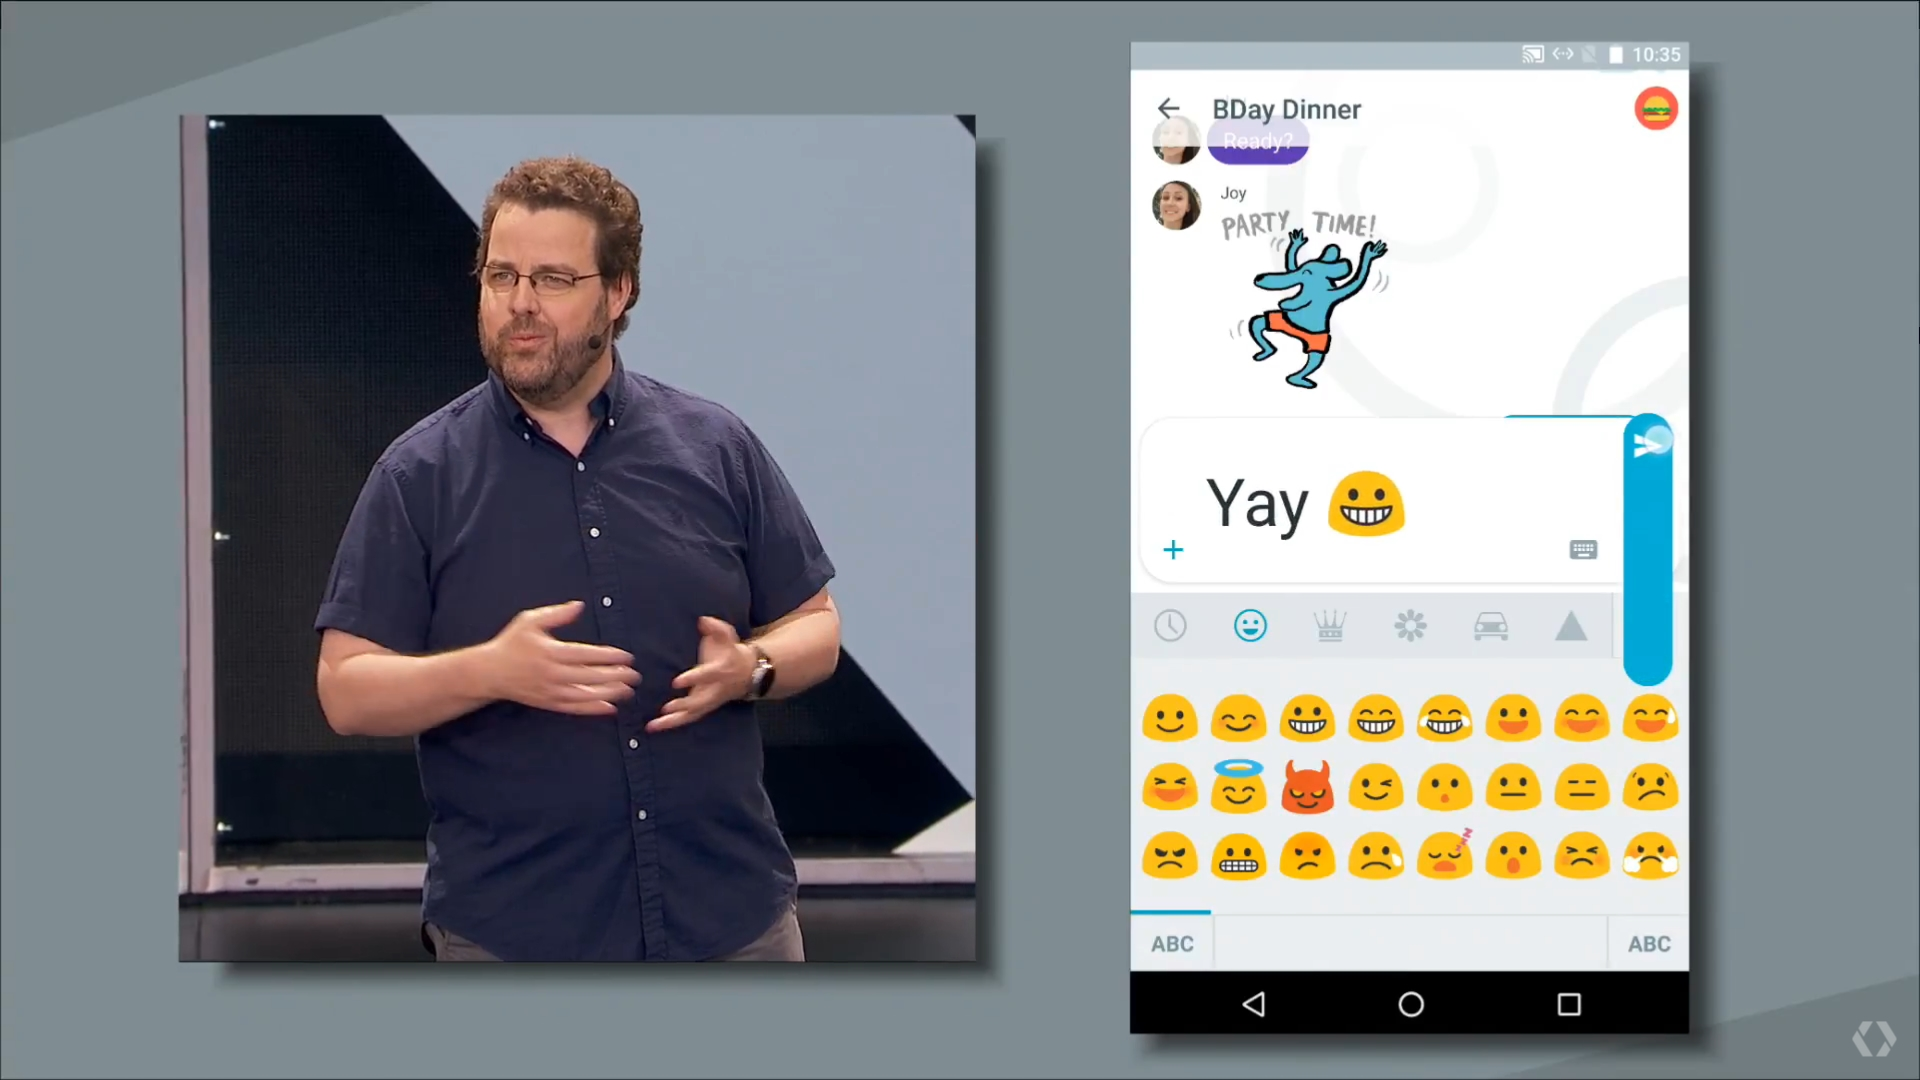 allo-whisper-shout-1-Google-IO-2016